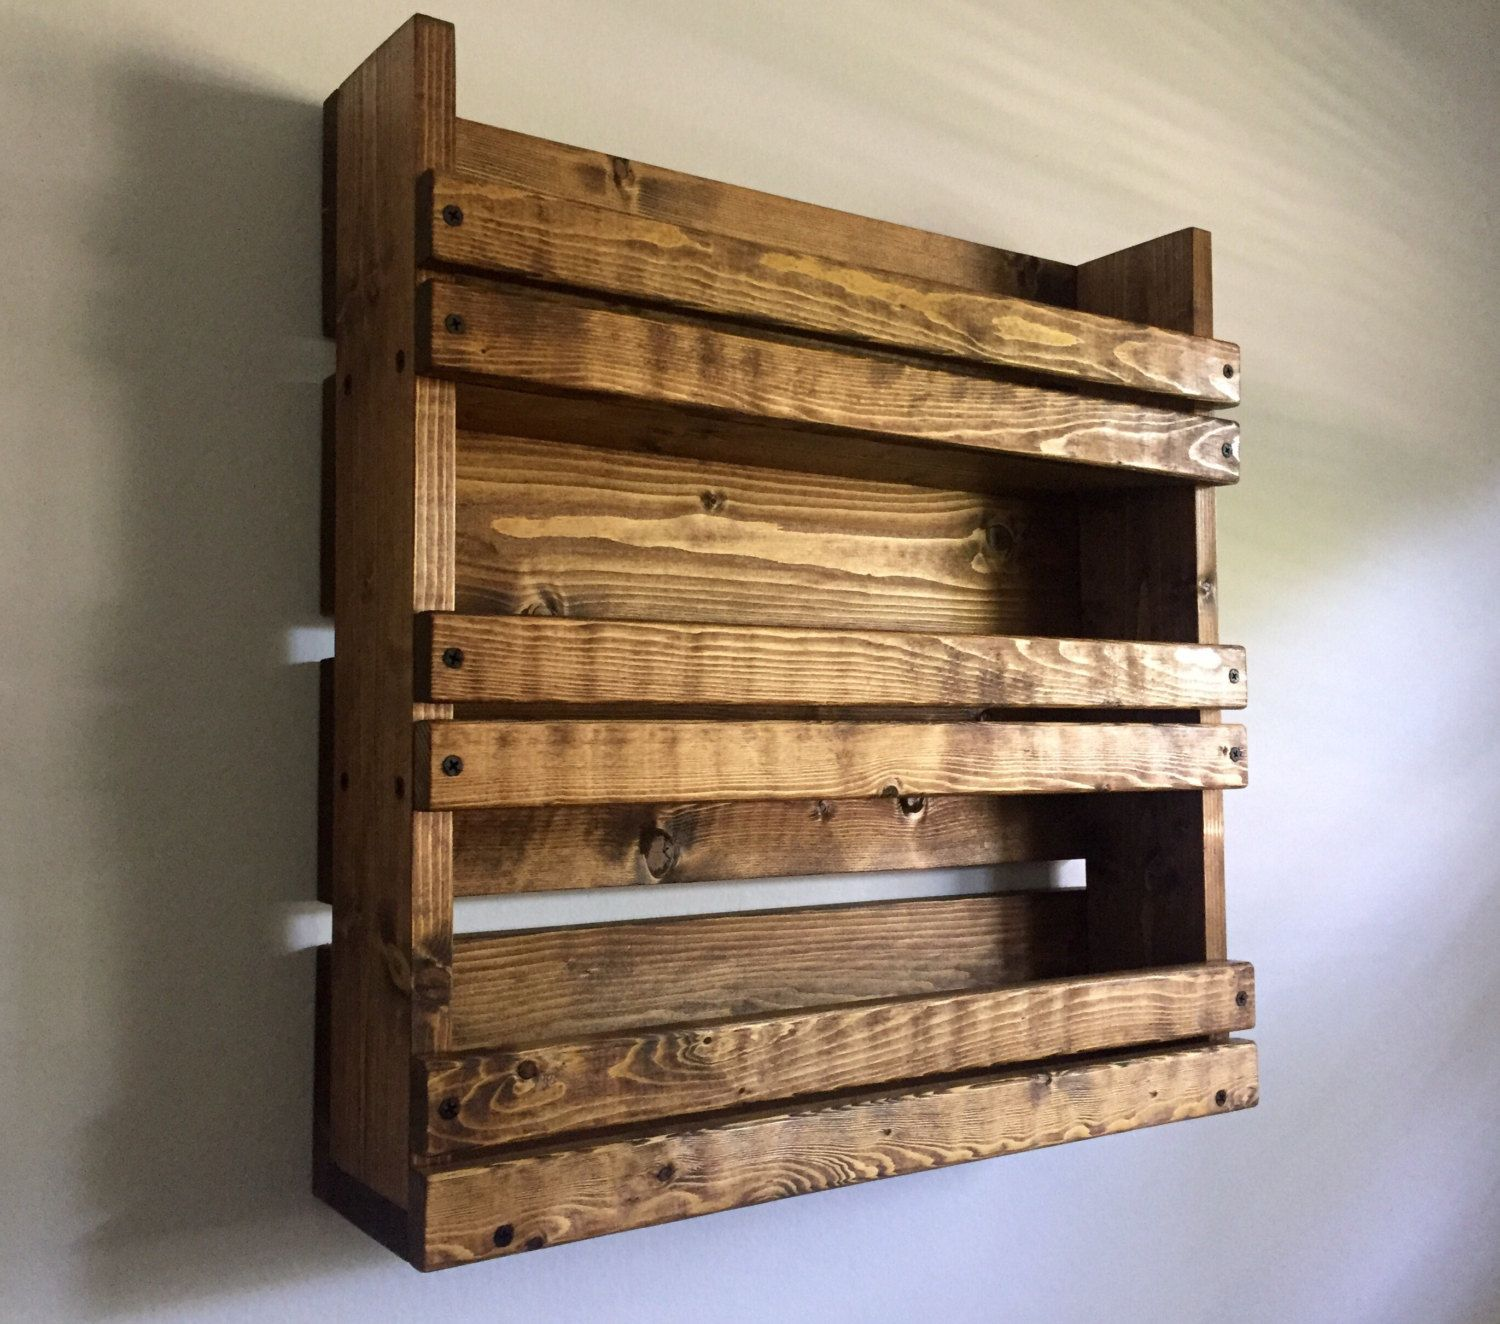 Wood Spice Rack For Wall Inspiration Spice Rack Rustic Spice Rack With 3 Shelves Kitchen Organizer Decorating Design